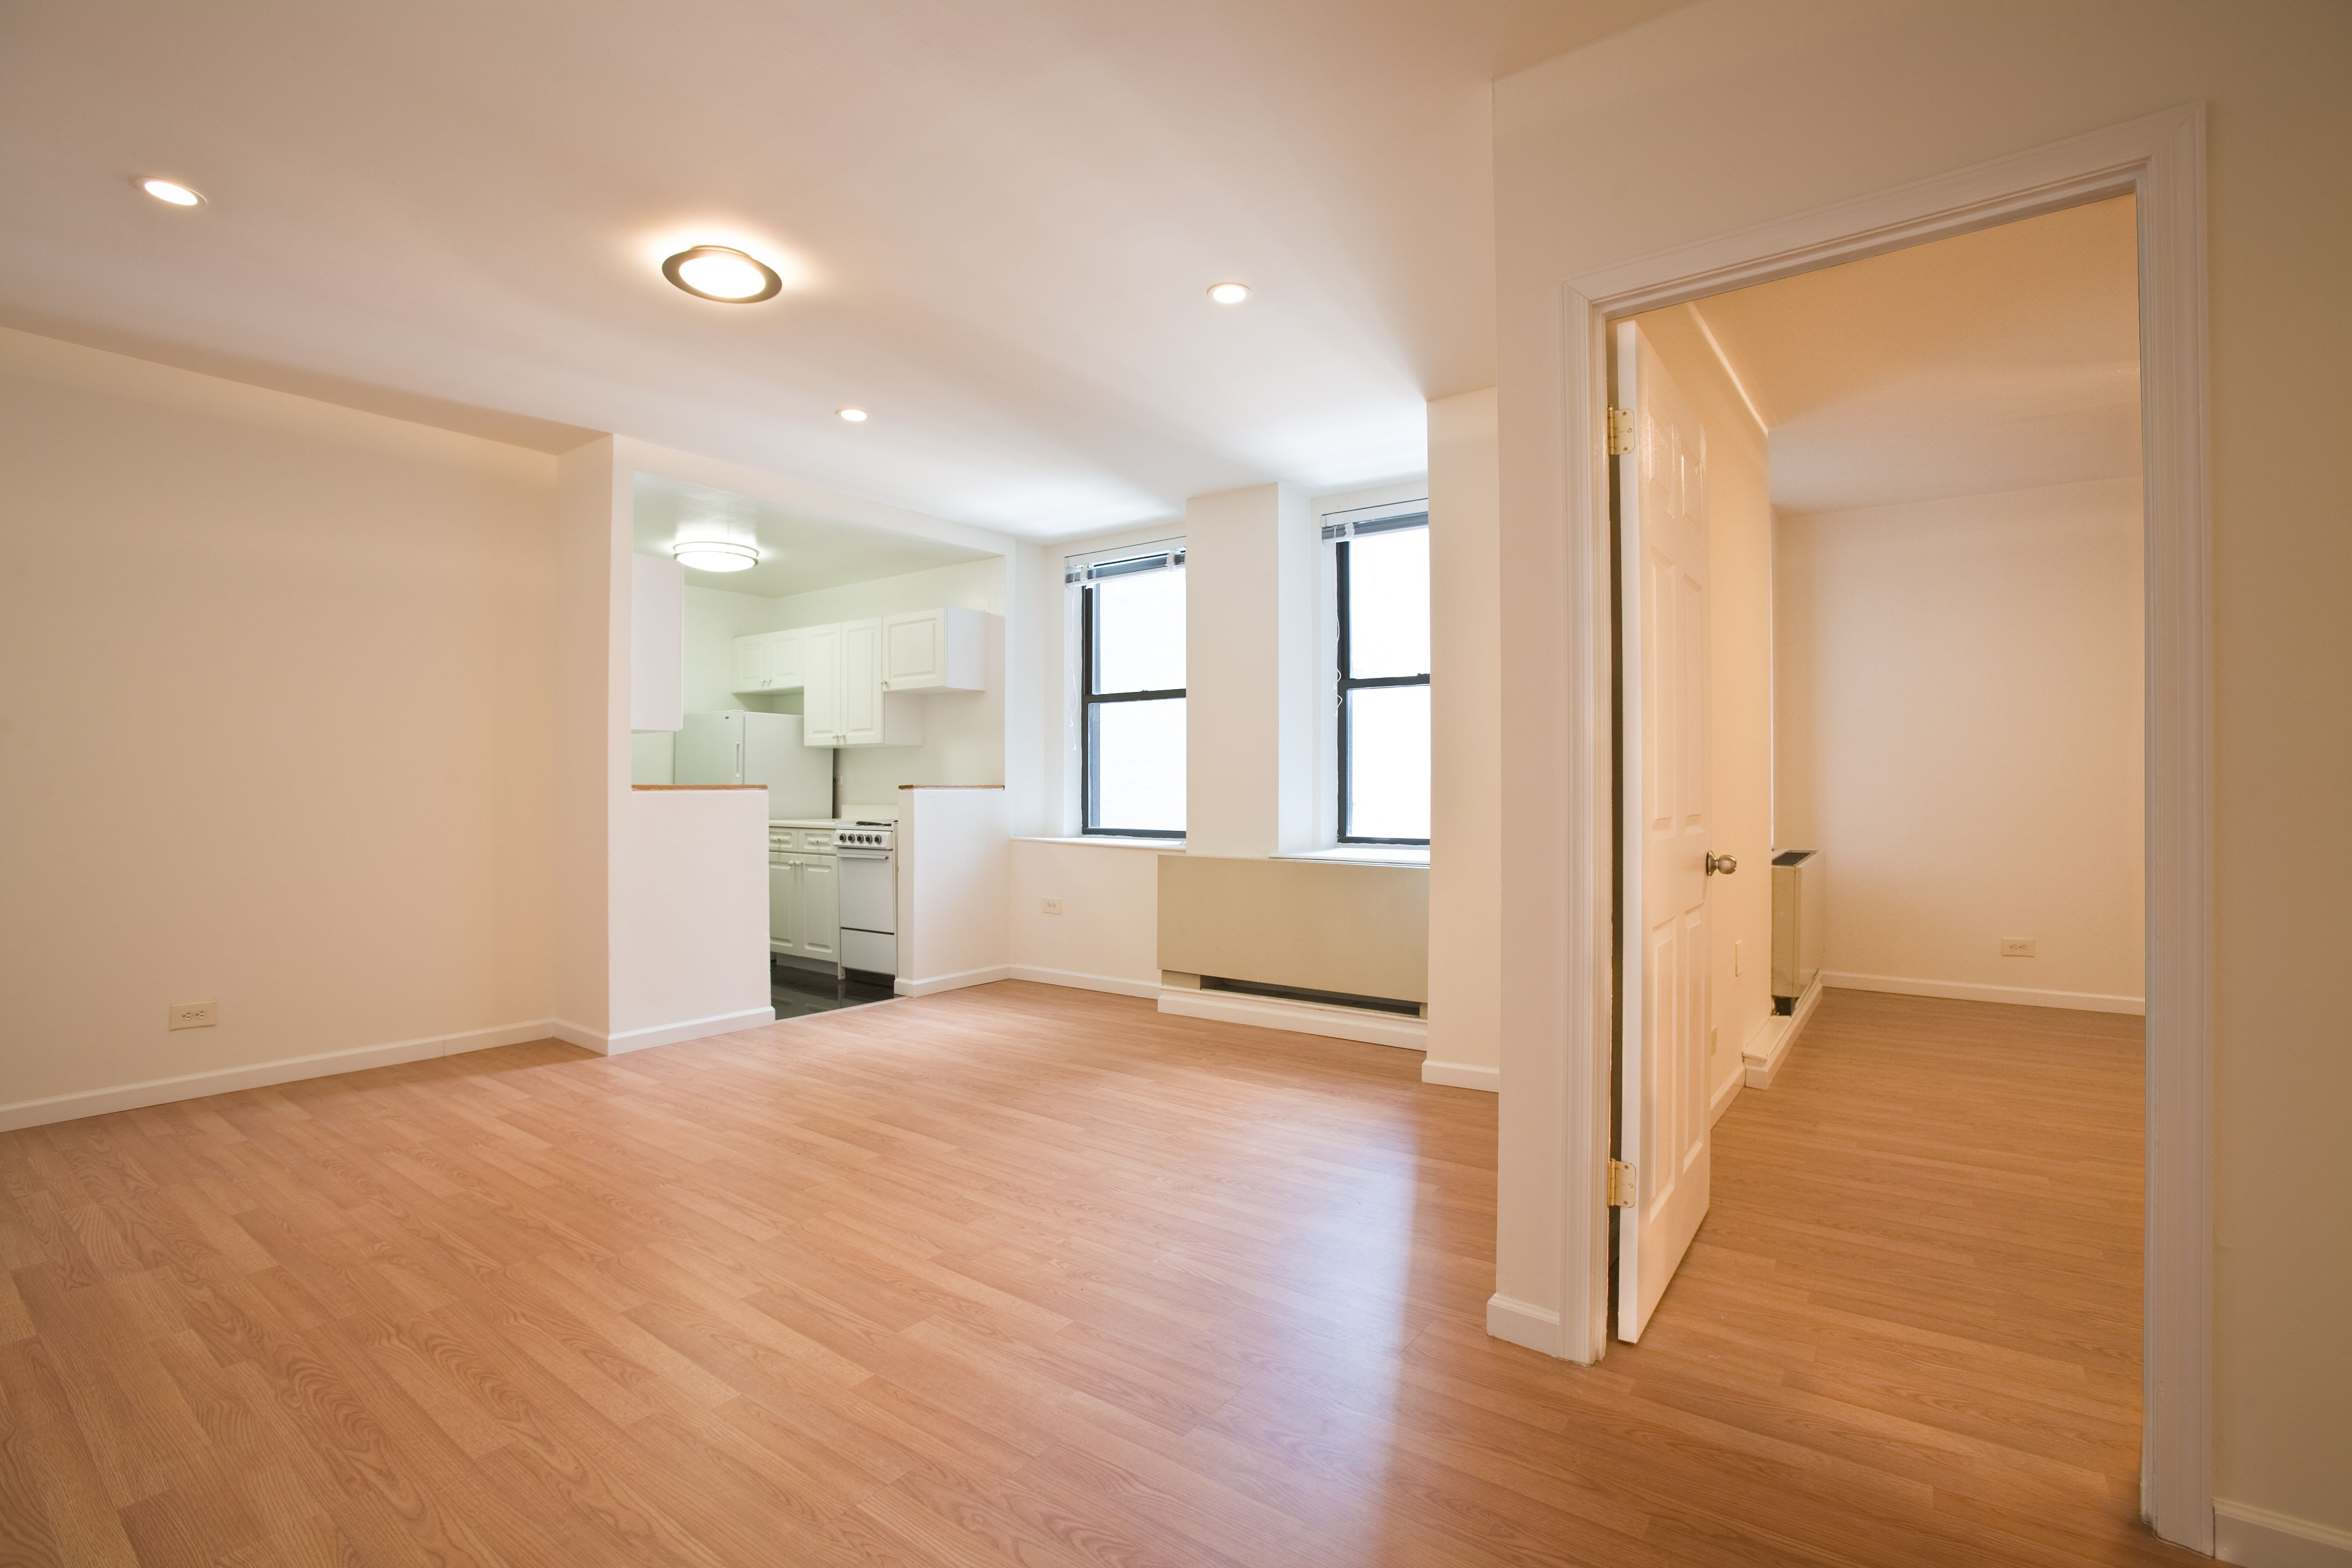 A wonderfully renovated one bedroom in the Herald Towers